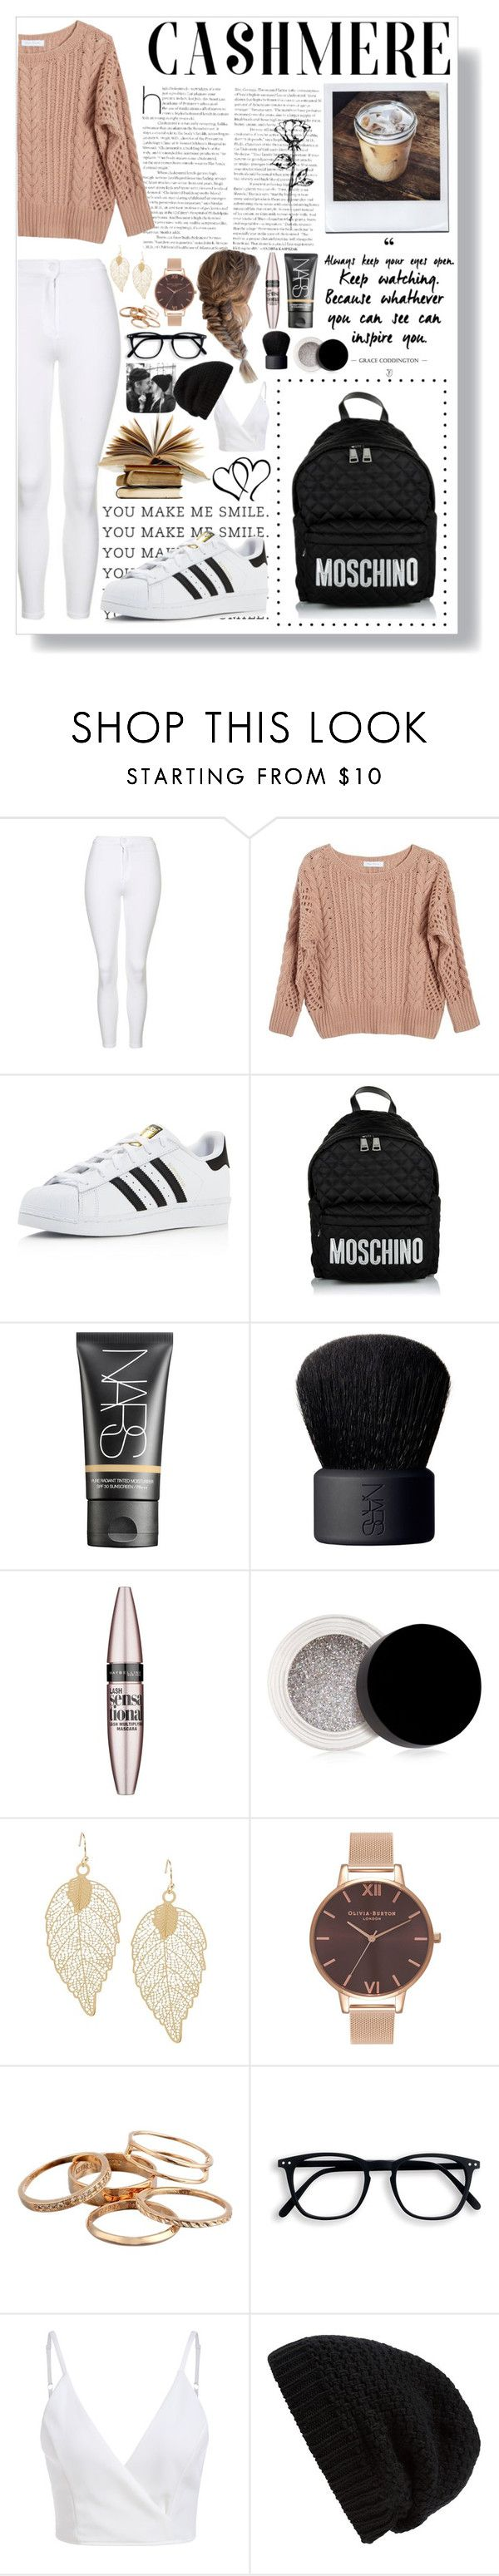 """Reading, boyfriends and lattes..."" by rhiannonpsayer on Polyvore featuring Topshop, Ryan Roche, adidas, Moschino, NARS Cosmetics, Maybelline, Inglot, Olivia Burton, Kendra Scott and Rick Owens"